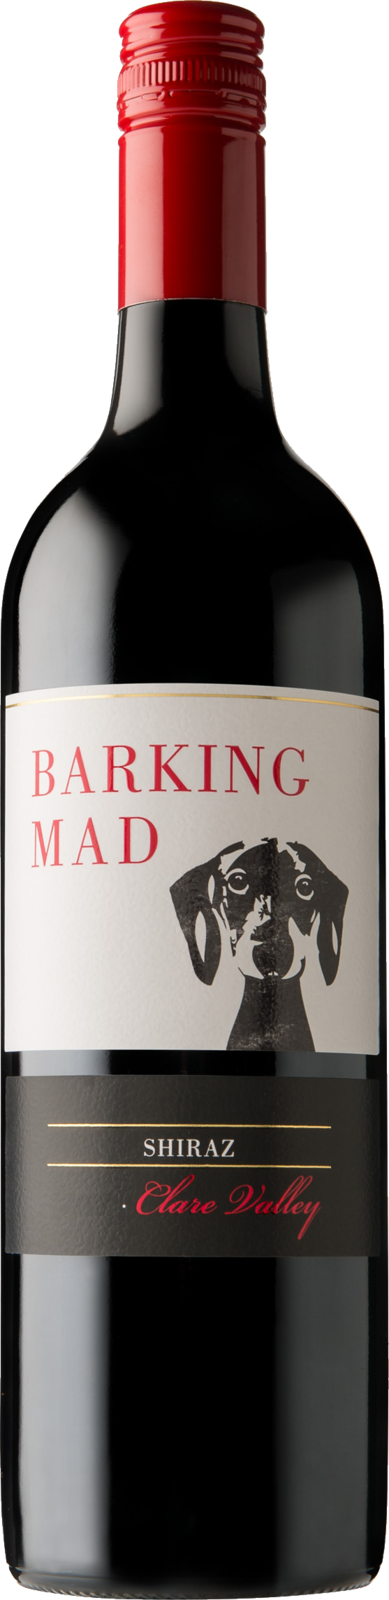 Barking Mad Watervale Clare Valley Shiraz 2017